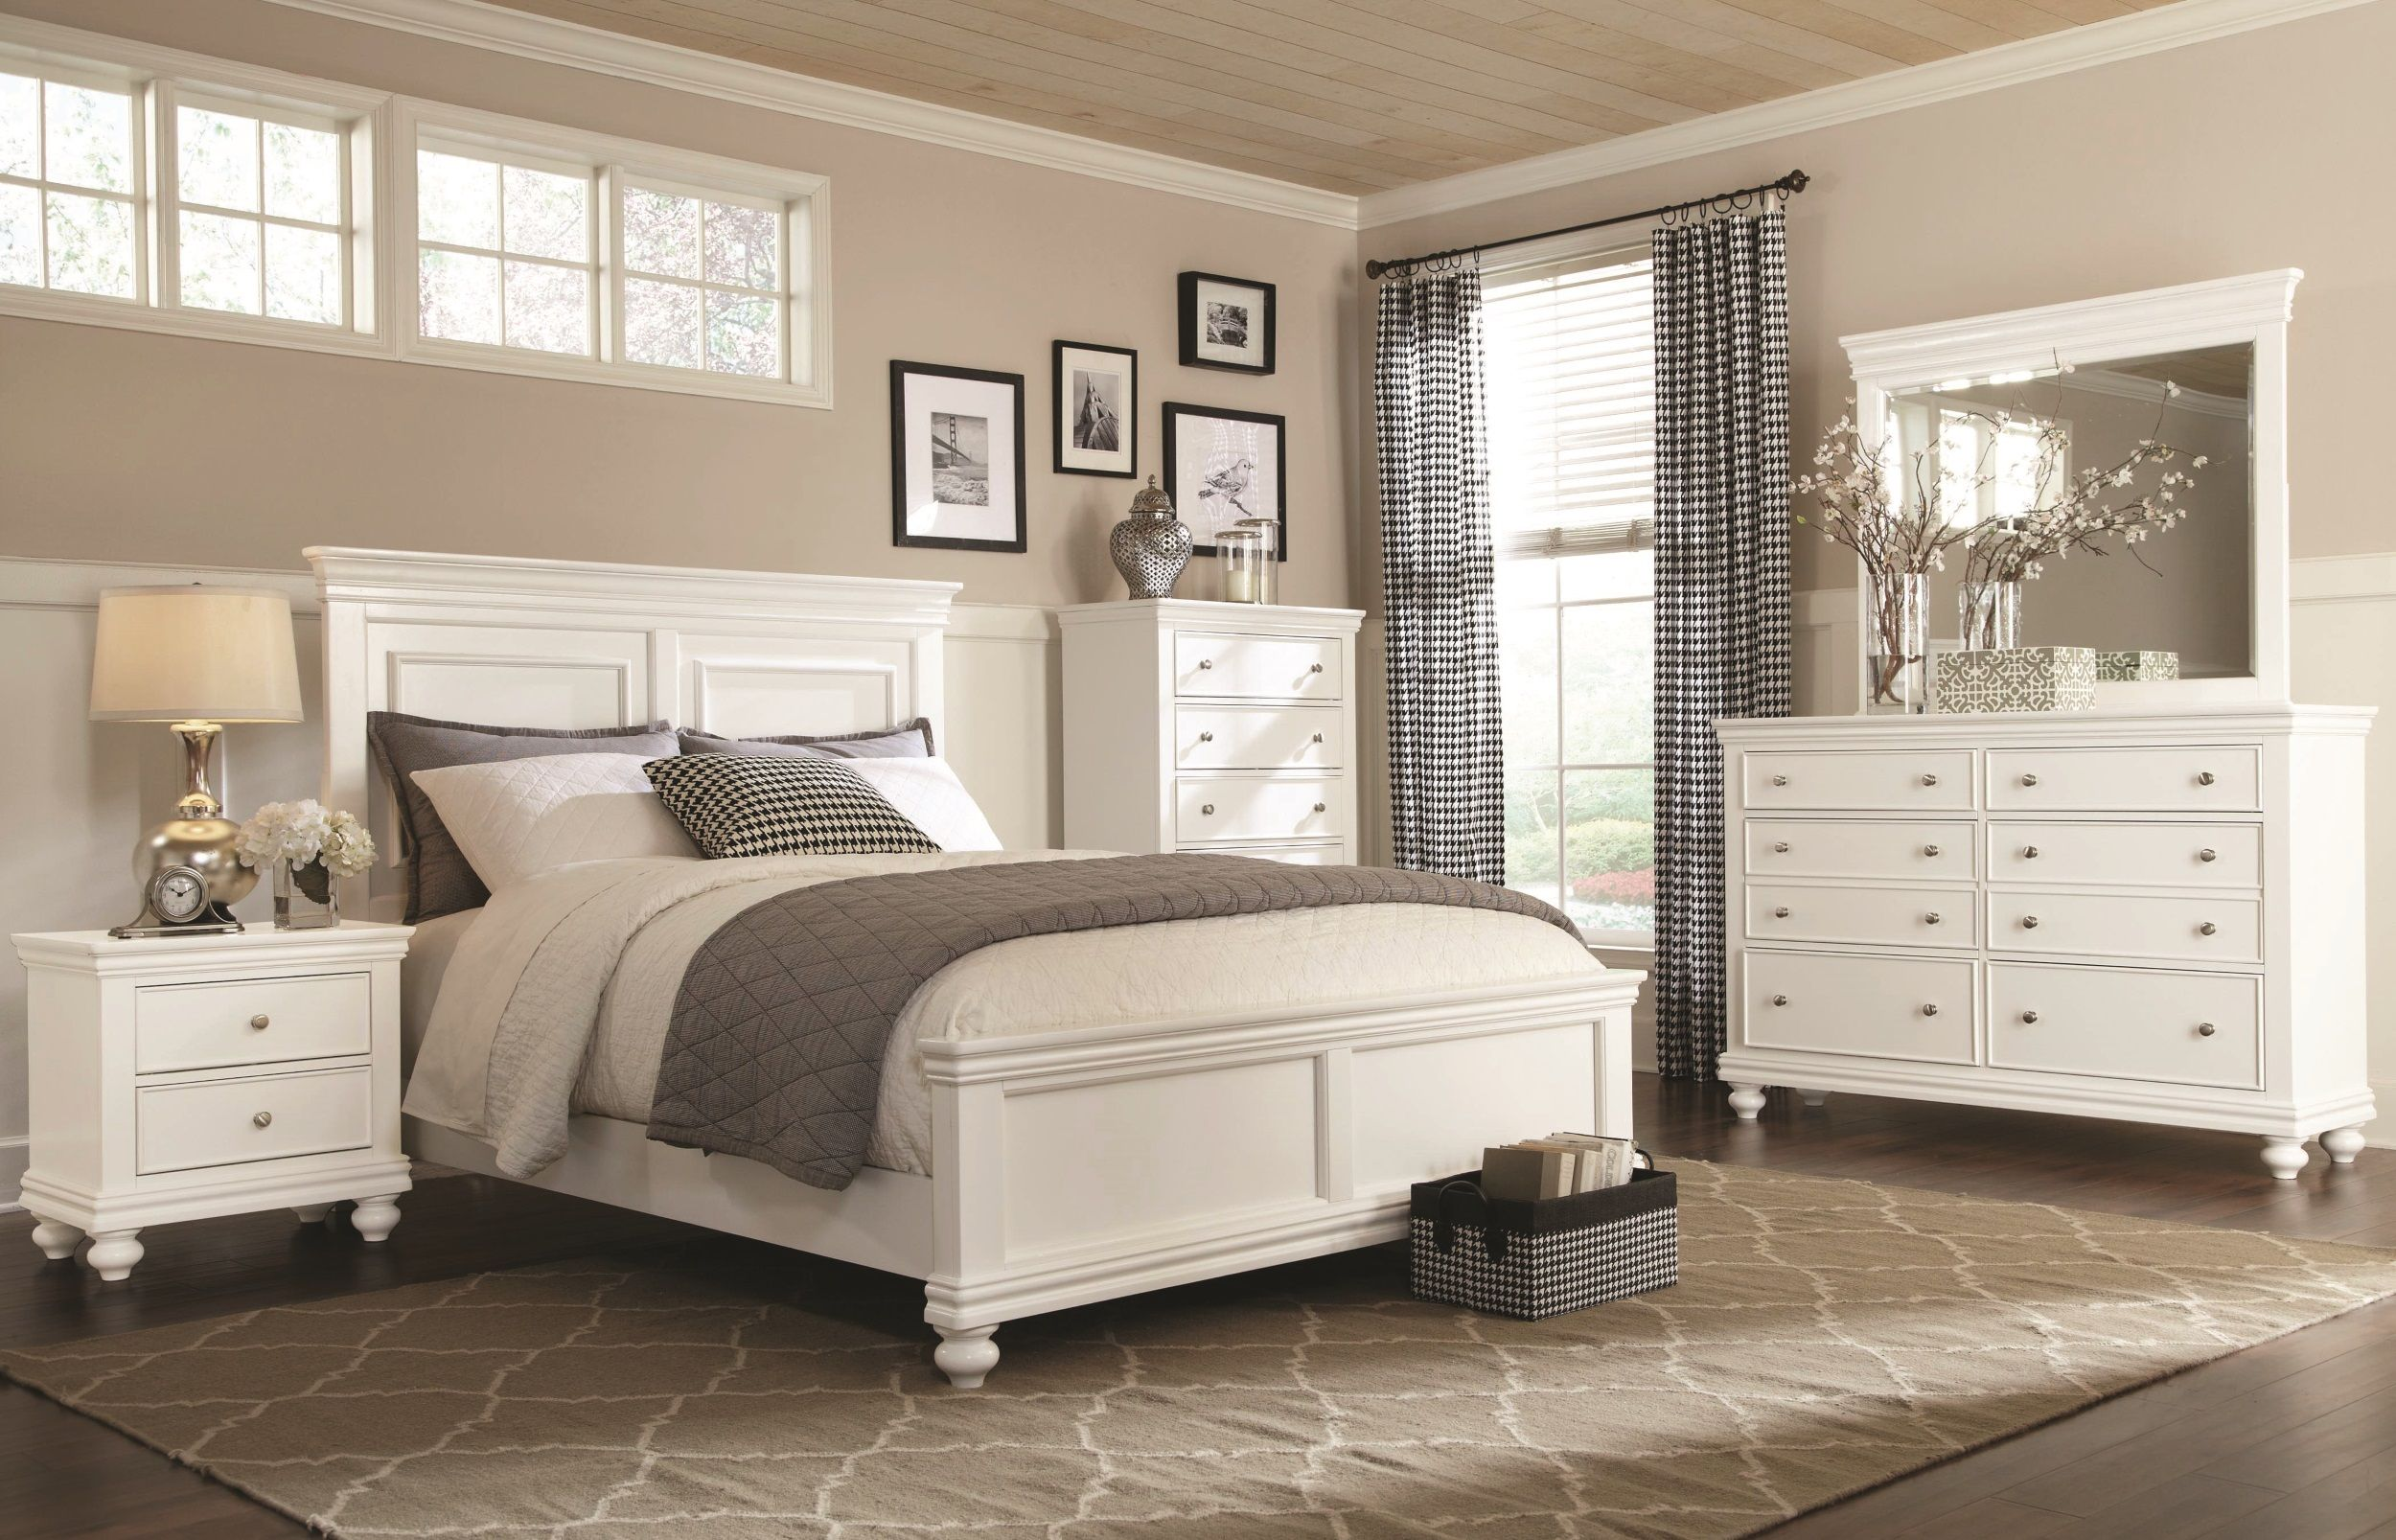 kane furniture collections edington king bed set products s room bedrooms bedroom